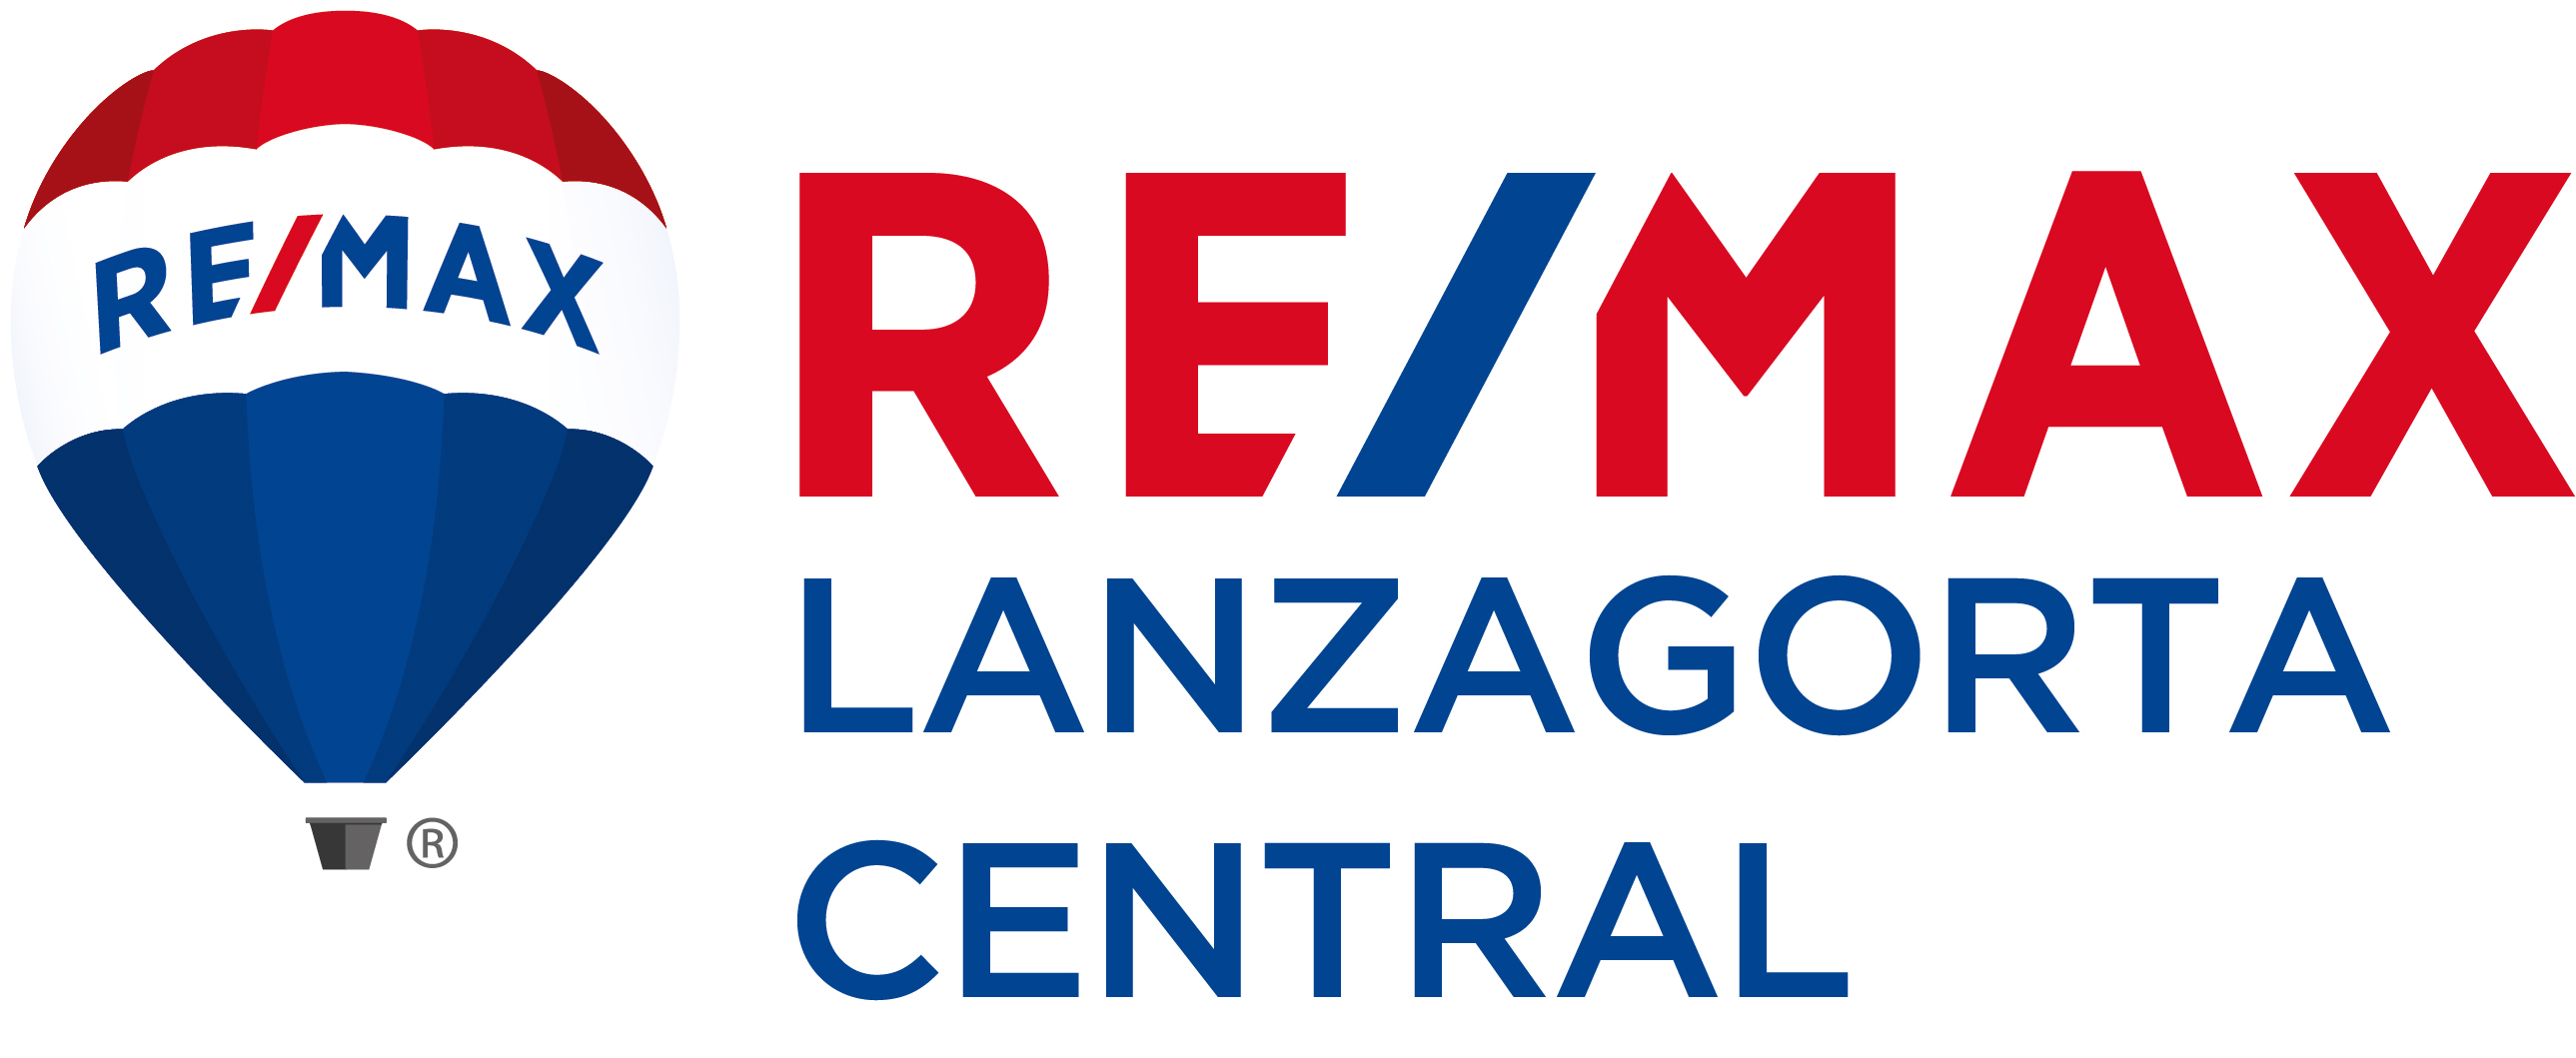 RE/MAX Lanzagorta Central